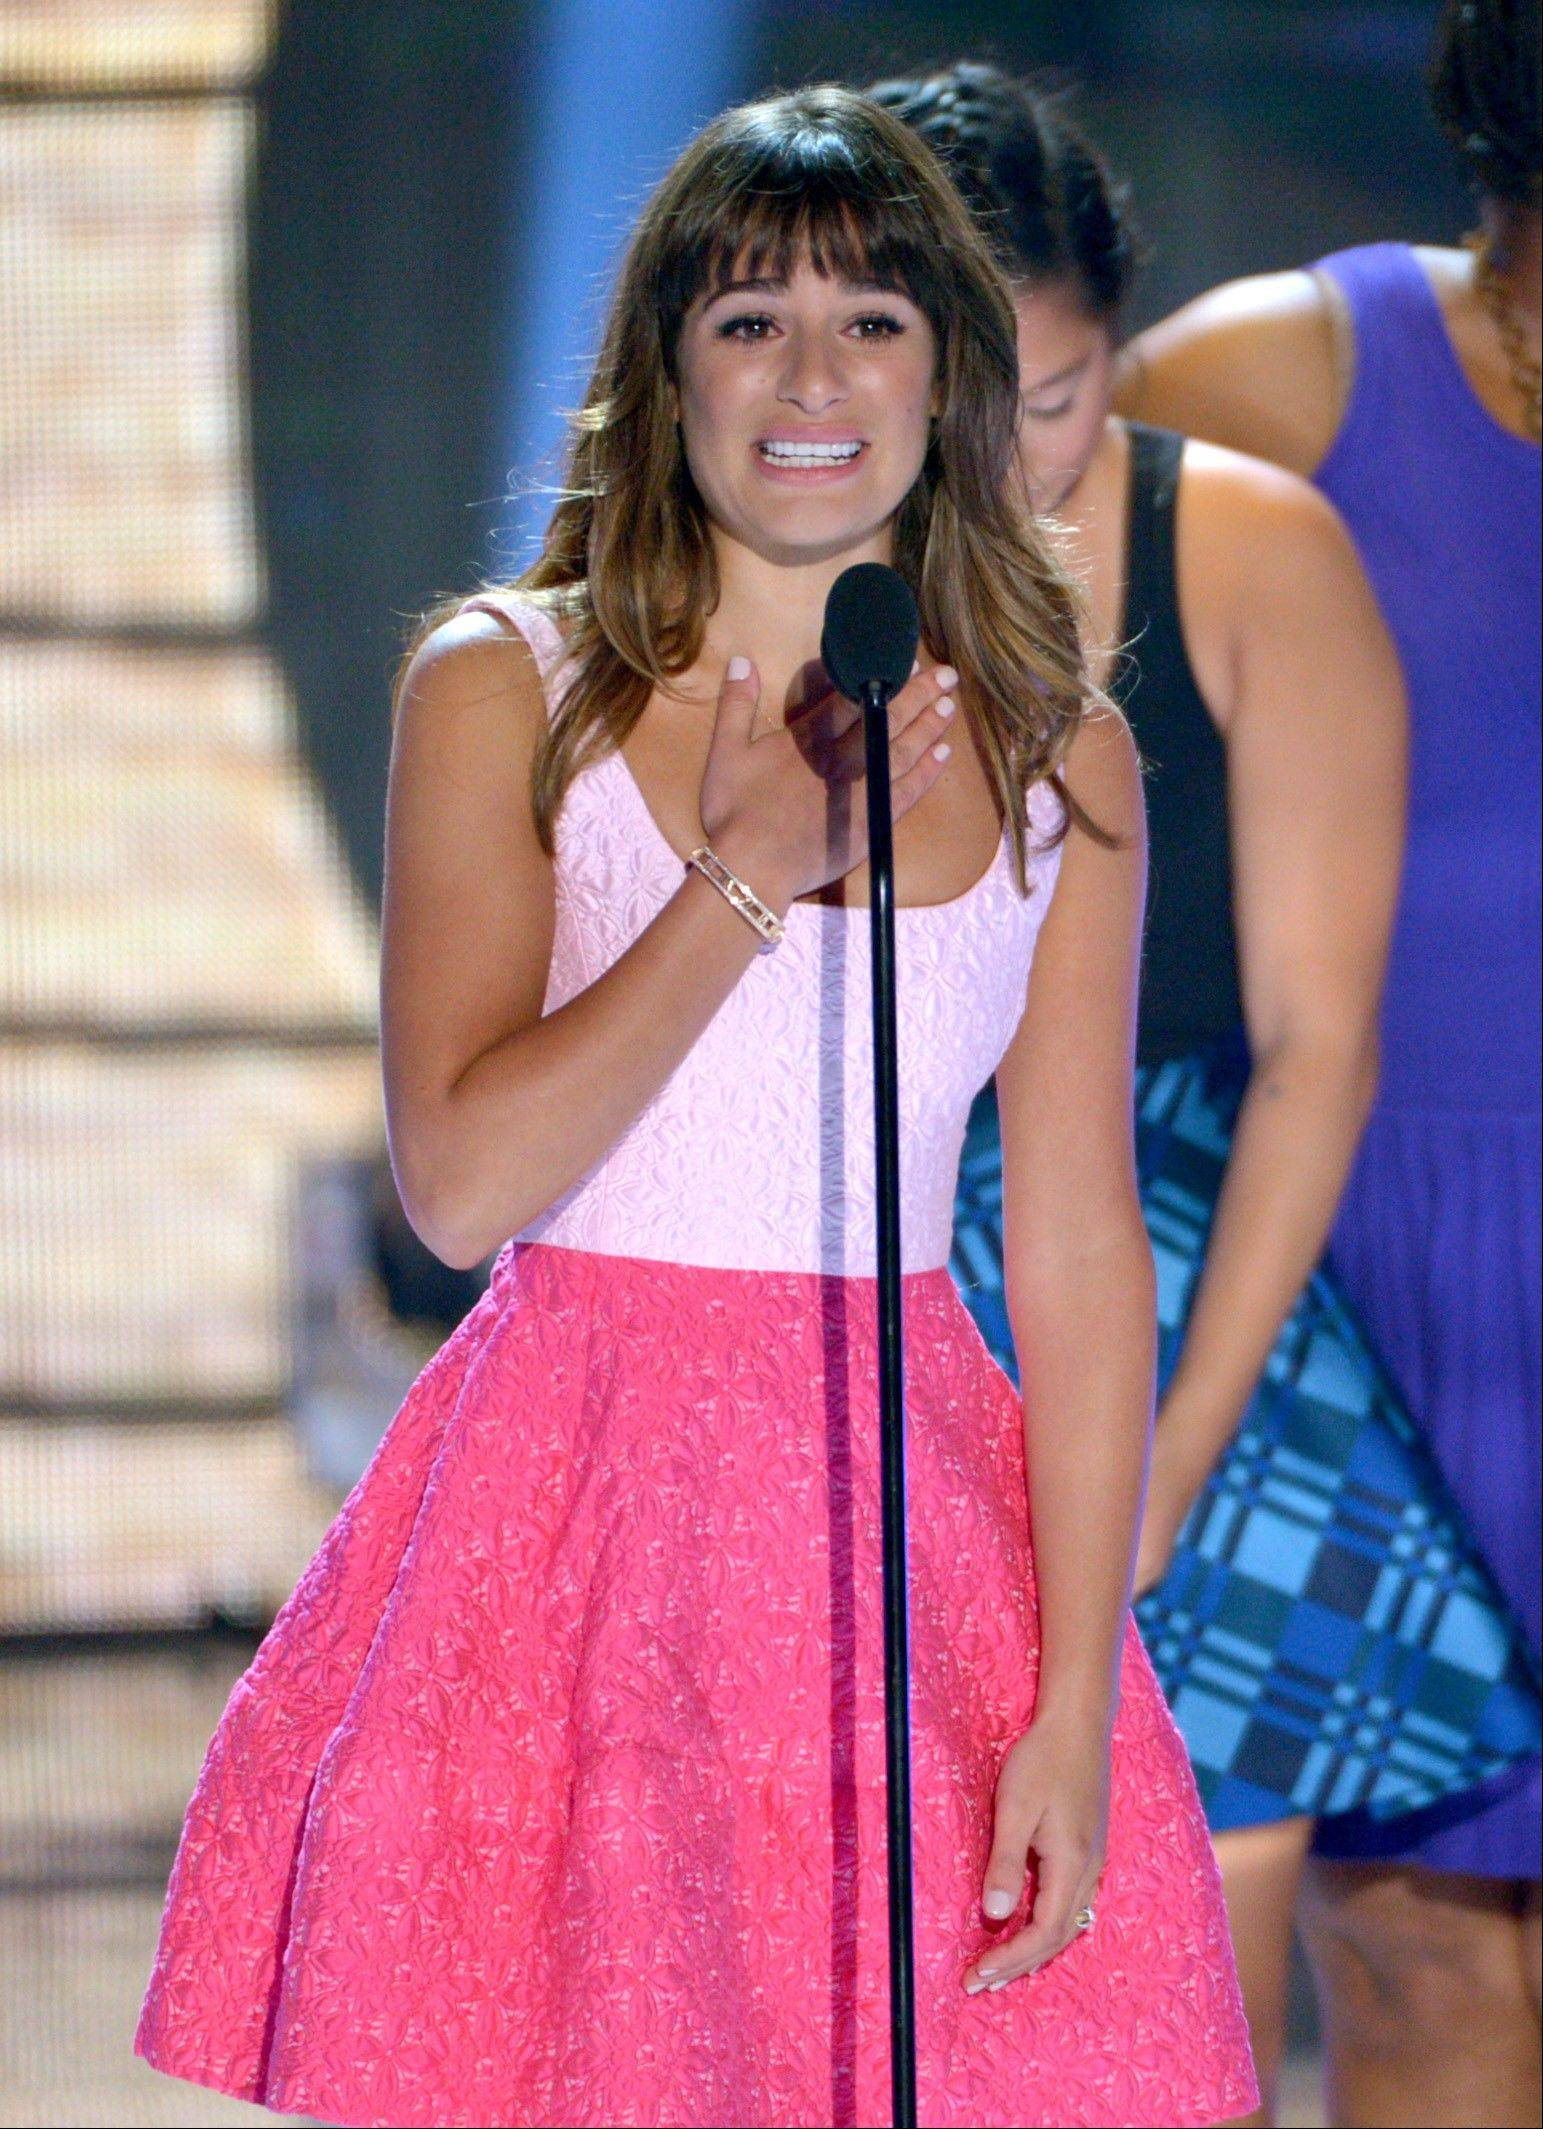 """Glee"" star actress Lea Michele speaks about the late actor Cory Monteith on stage at the Teen Choice Awards at the Gibson Amphitheater on Sunday. Monteith died in July of a drug overdose."